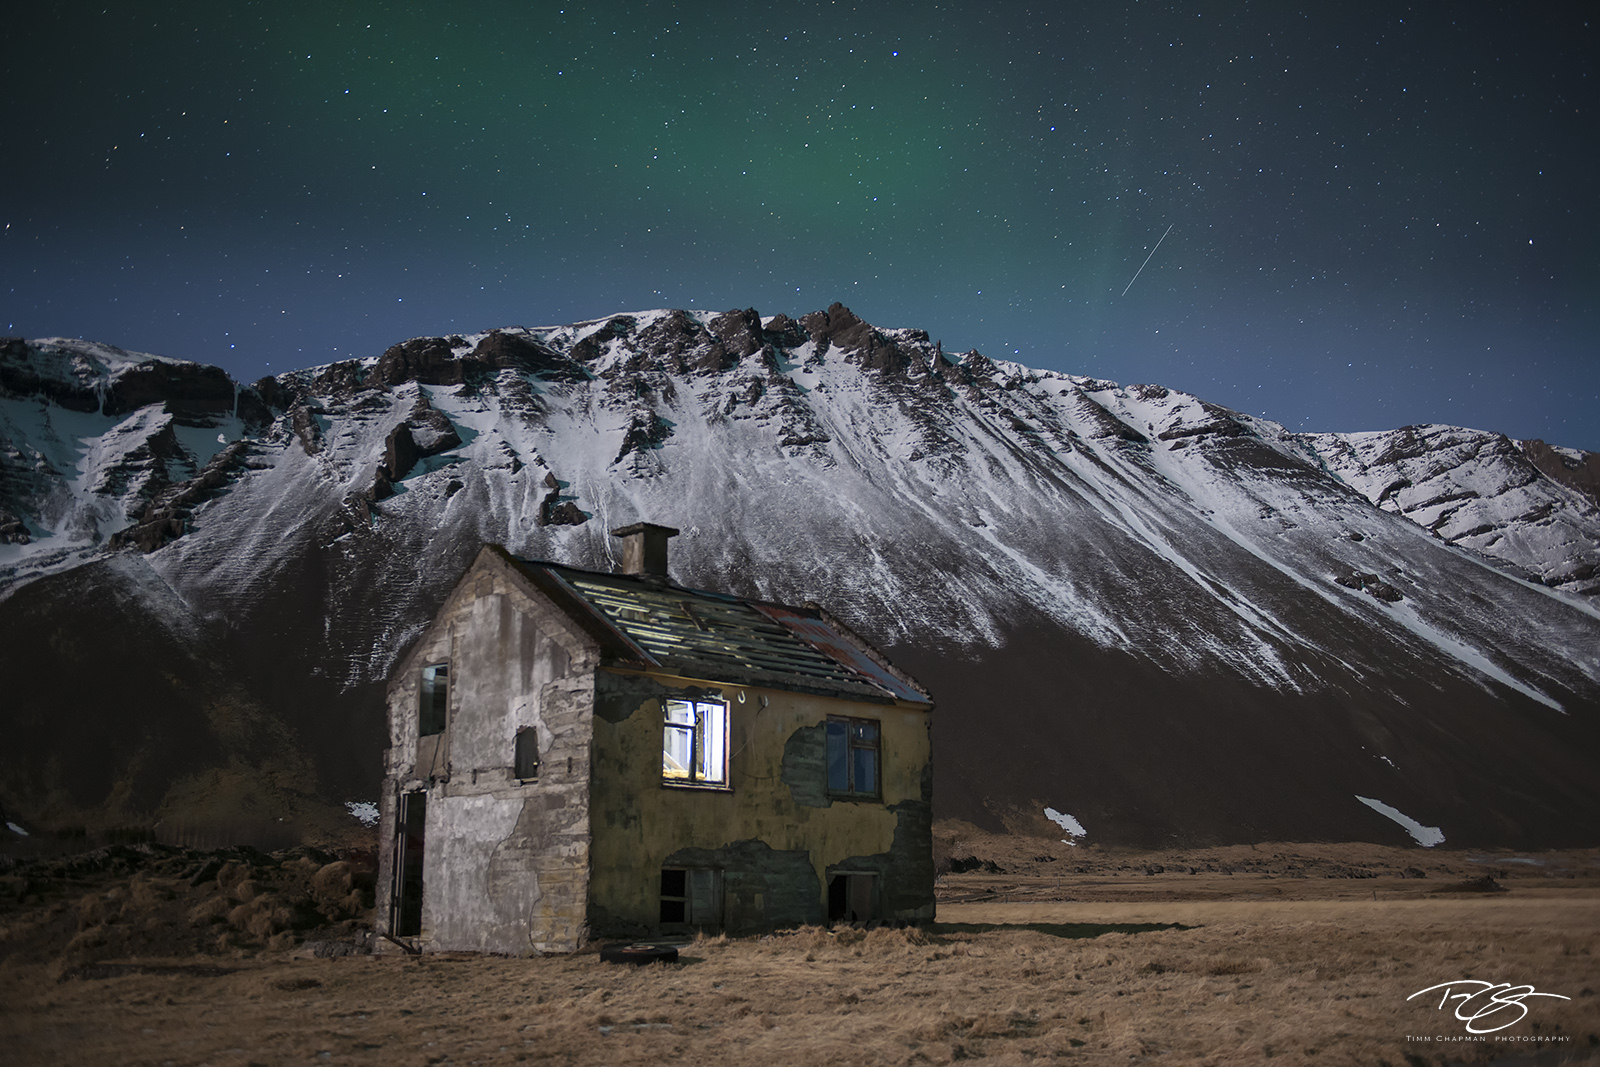 Iceland, aurora, borealis, green, abandoned, stars, northern lights, spirit, coronal mass ejection, solar flare, shooting star, nordic, arctic, farmhouse, house, deserted, forsaken, a sign from above, photo